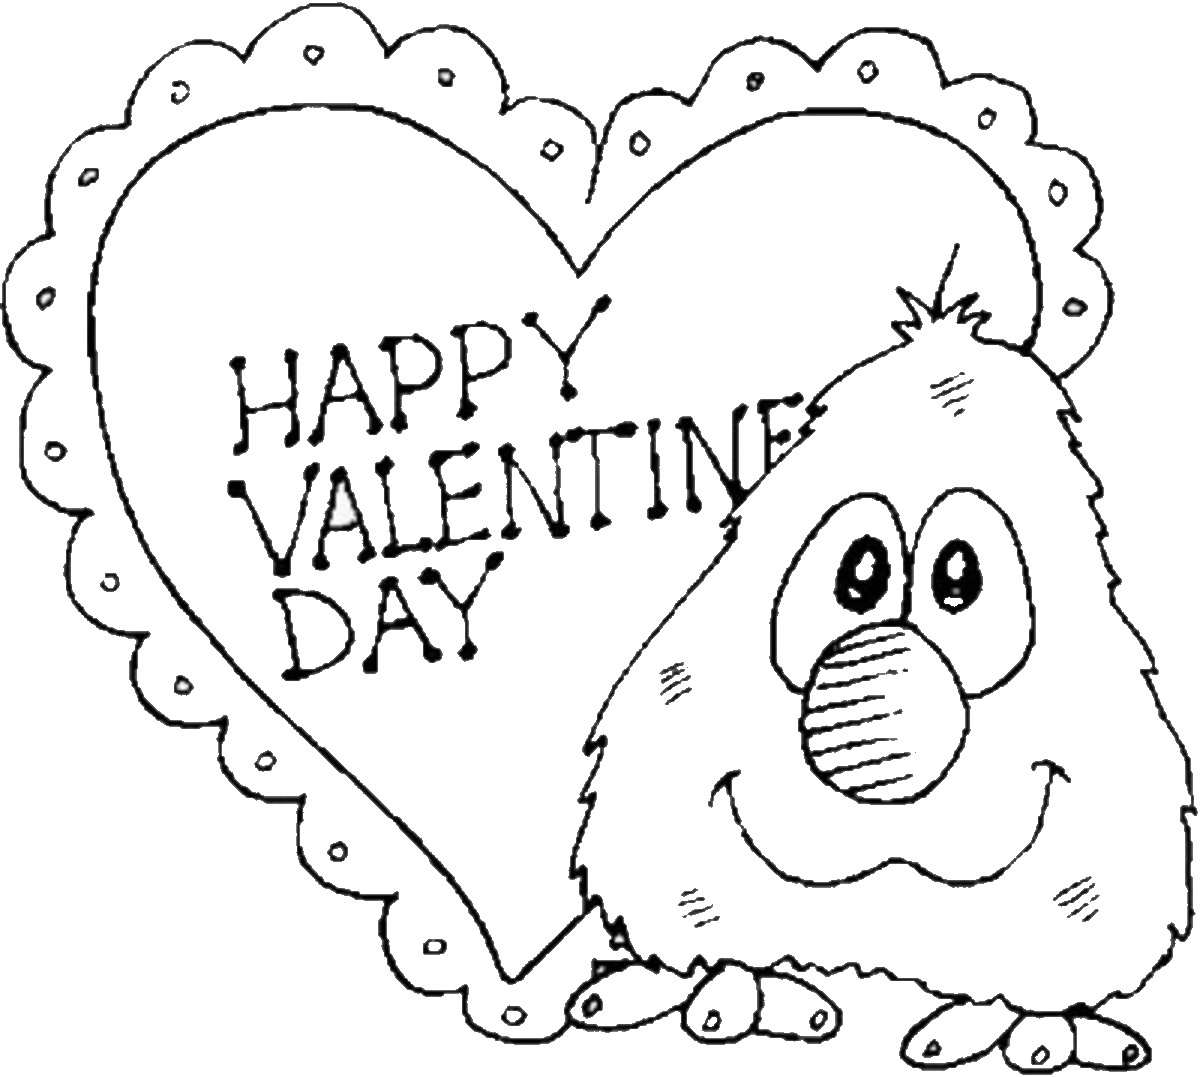 valentines day coloring pages free printable valentines day coloring pages free pages valentines printable coloring day